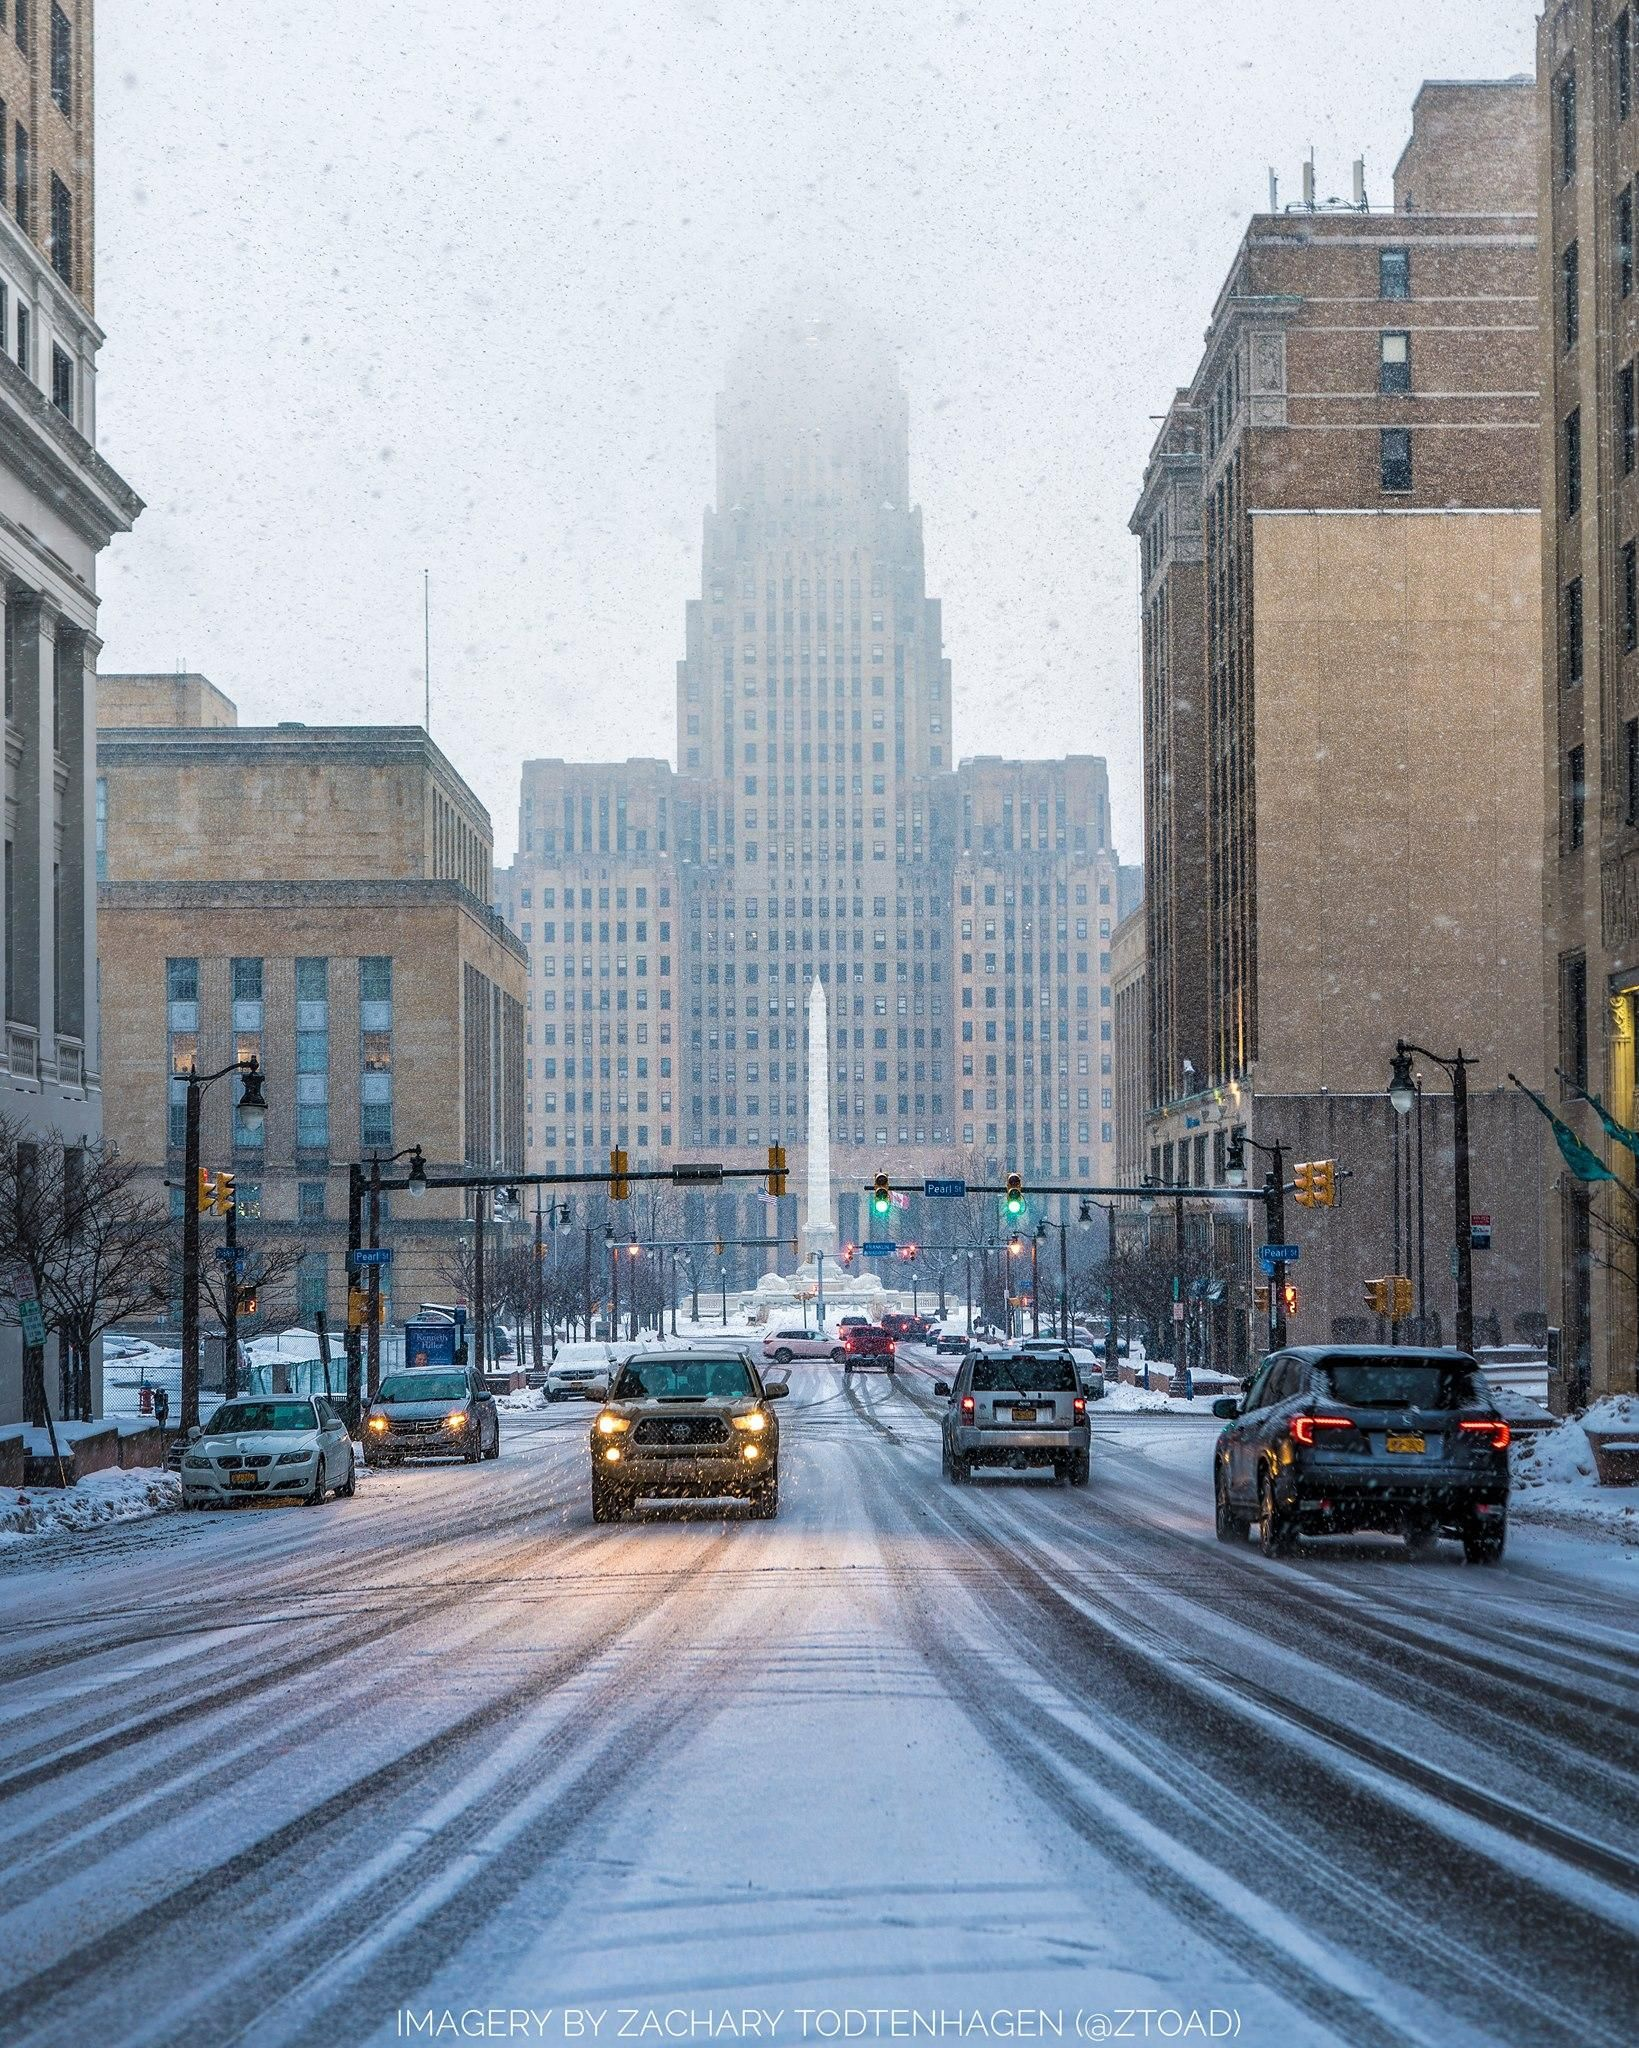 Tonight S Sunset Snowfall In Downtown Buffalo New York Oc City Cities Buildings Photography Buffalo City Buffalo New York New York Photography